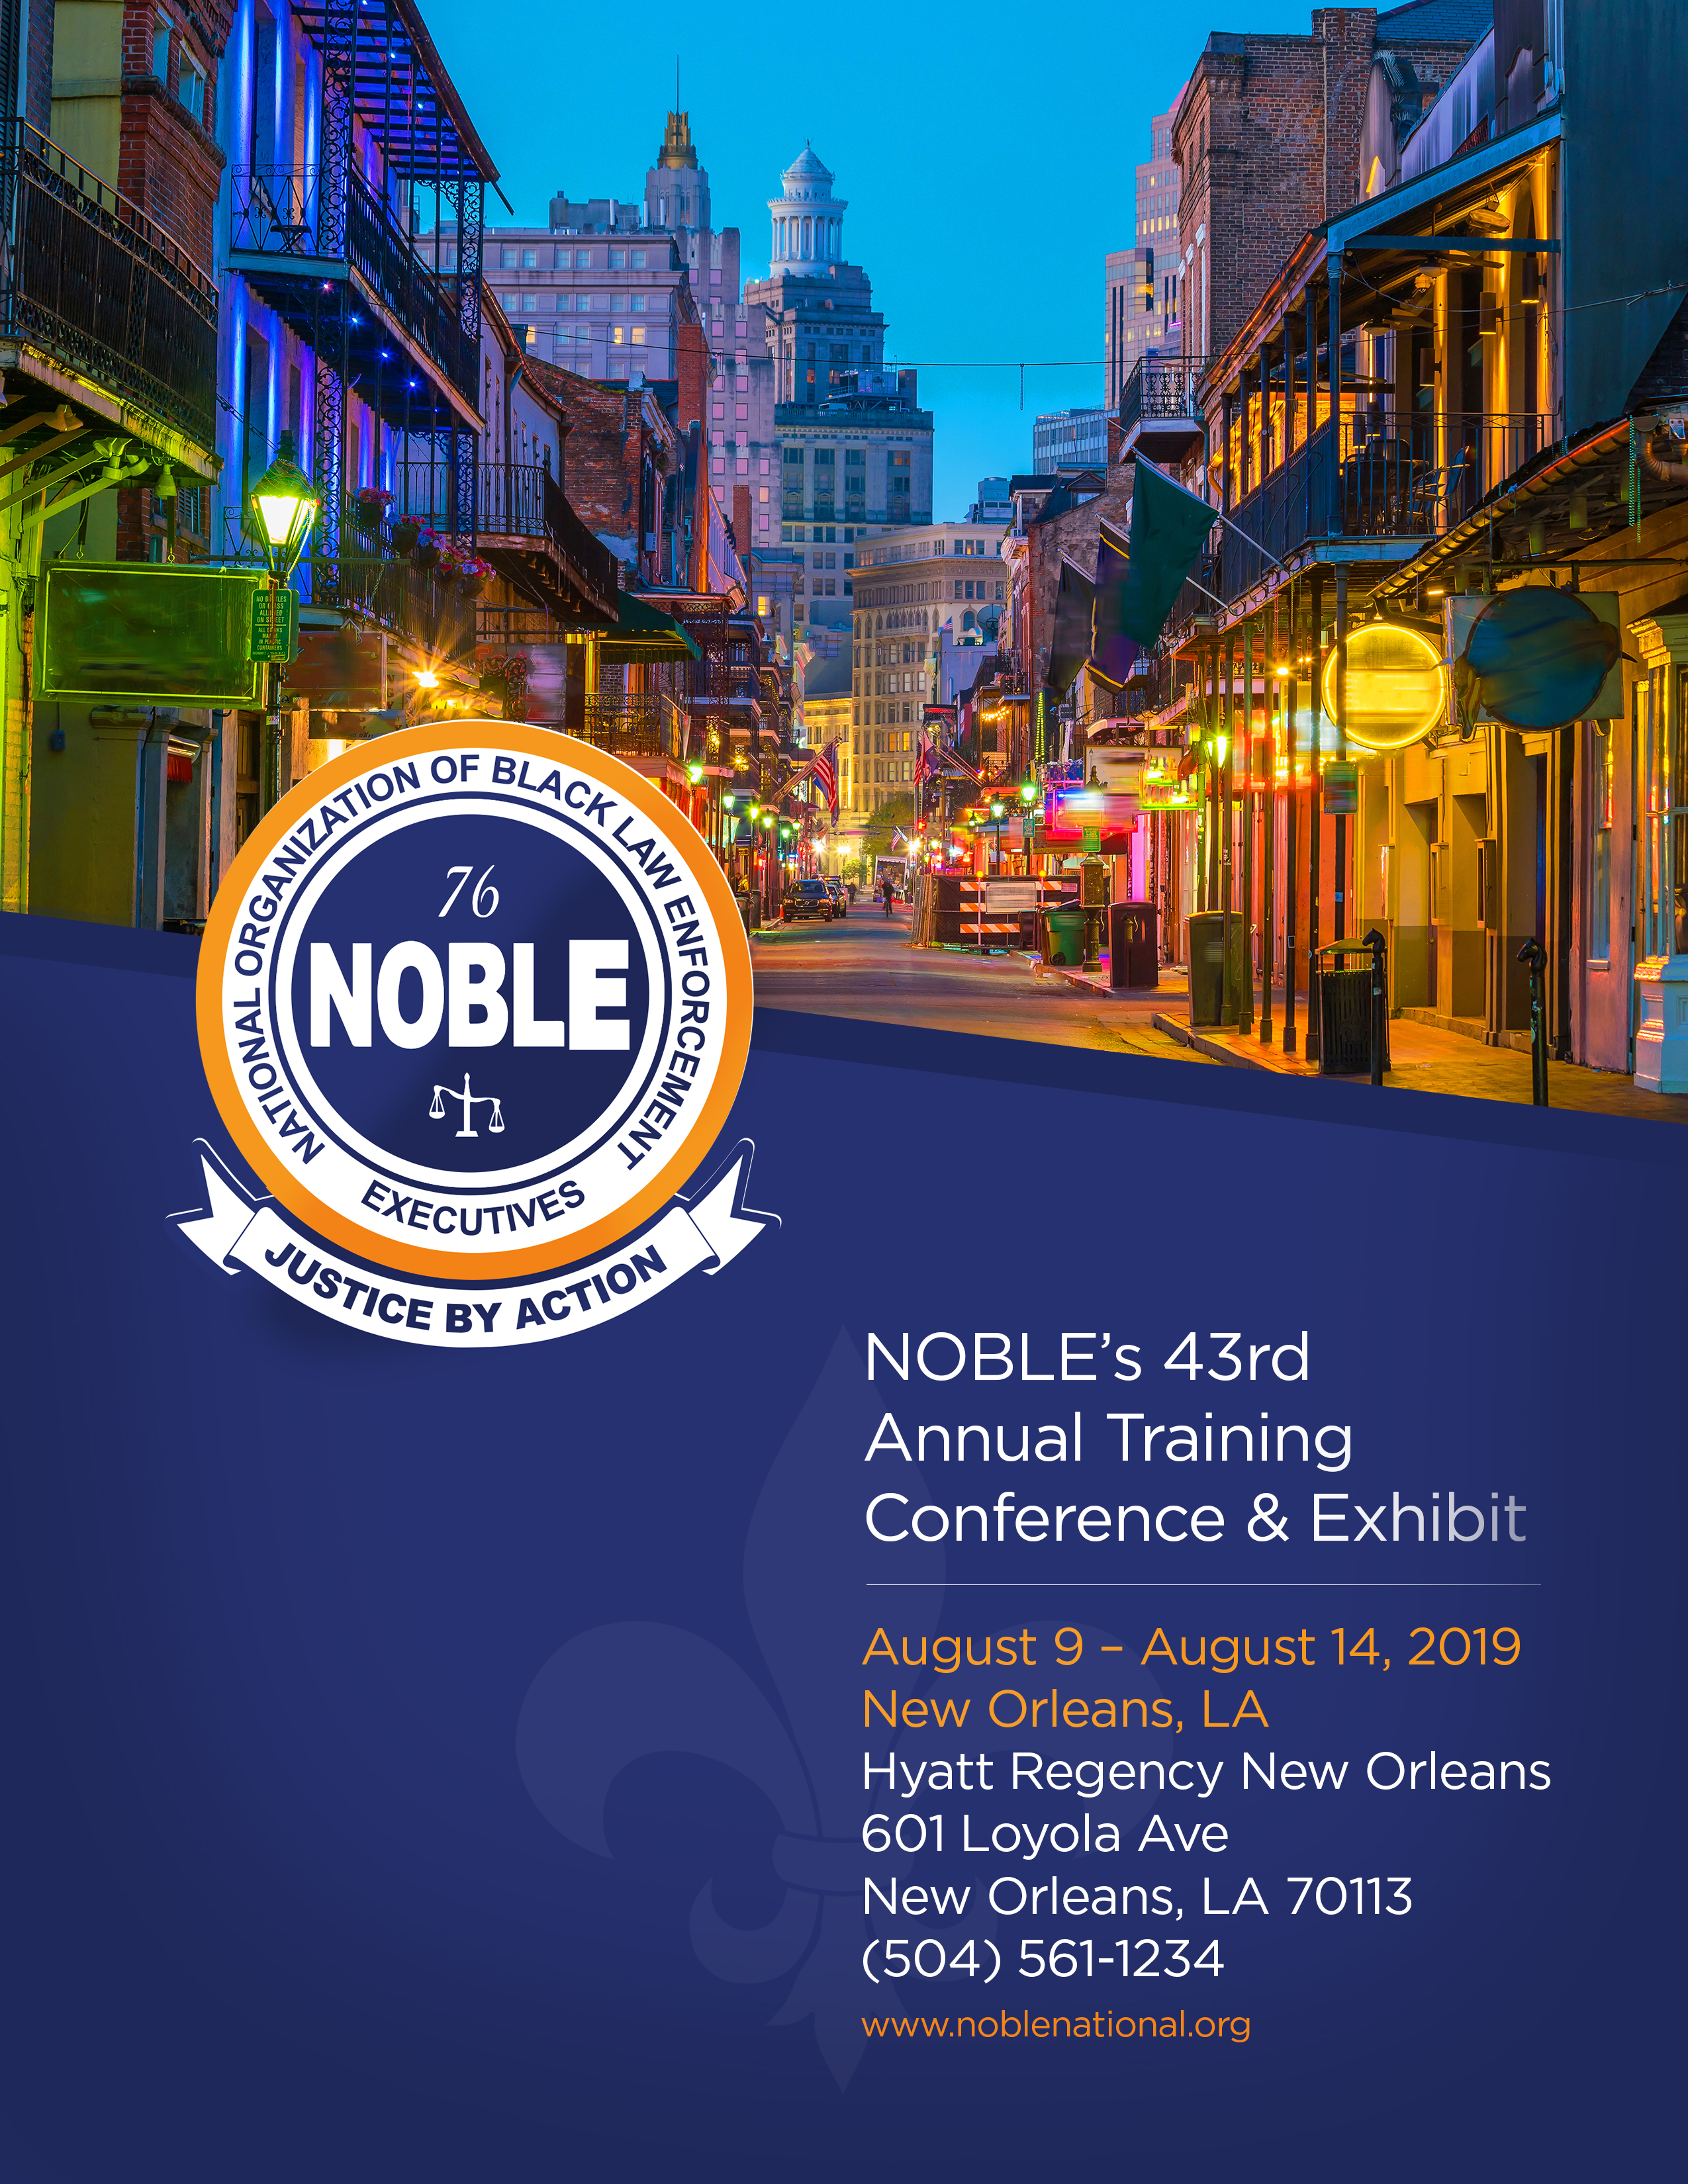 NOBLE-2019-Annual-Training-Conference-flyer_1012018-1